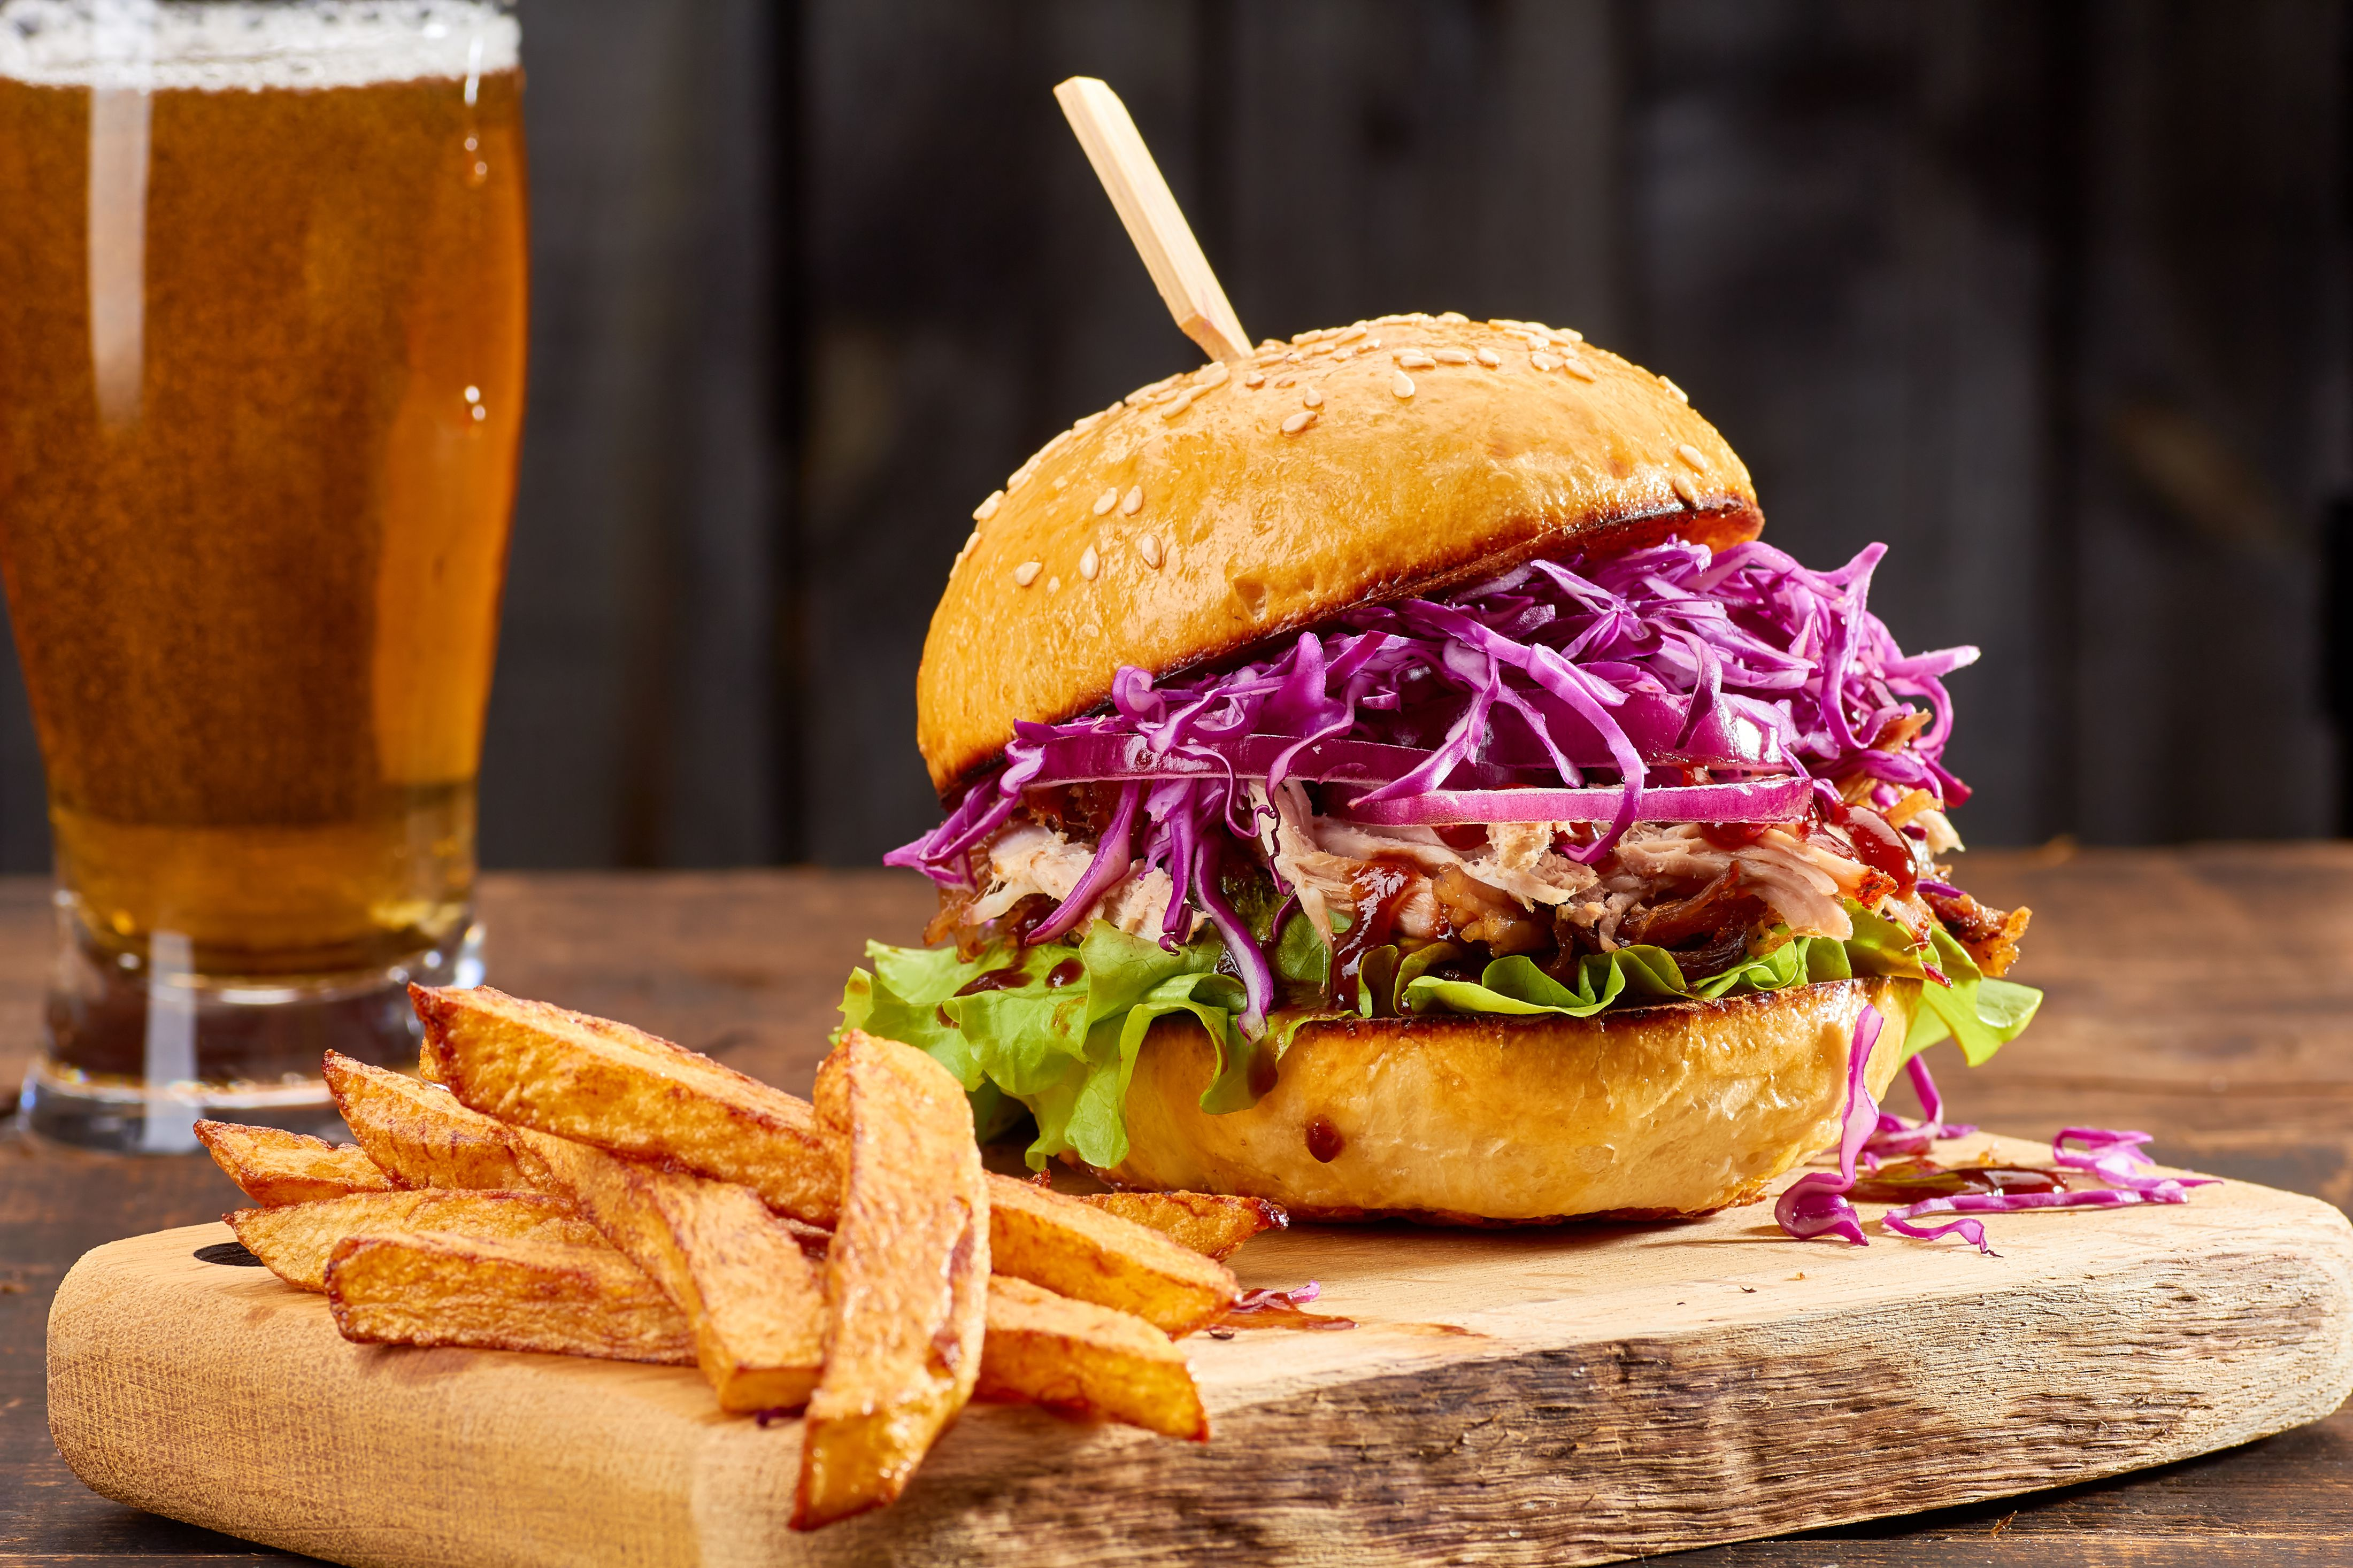 Pulled pork with cabbage slaw and fries